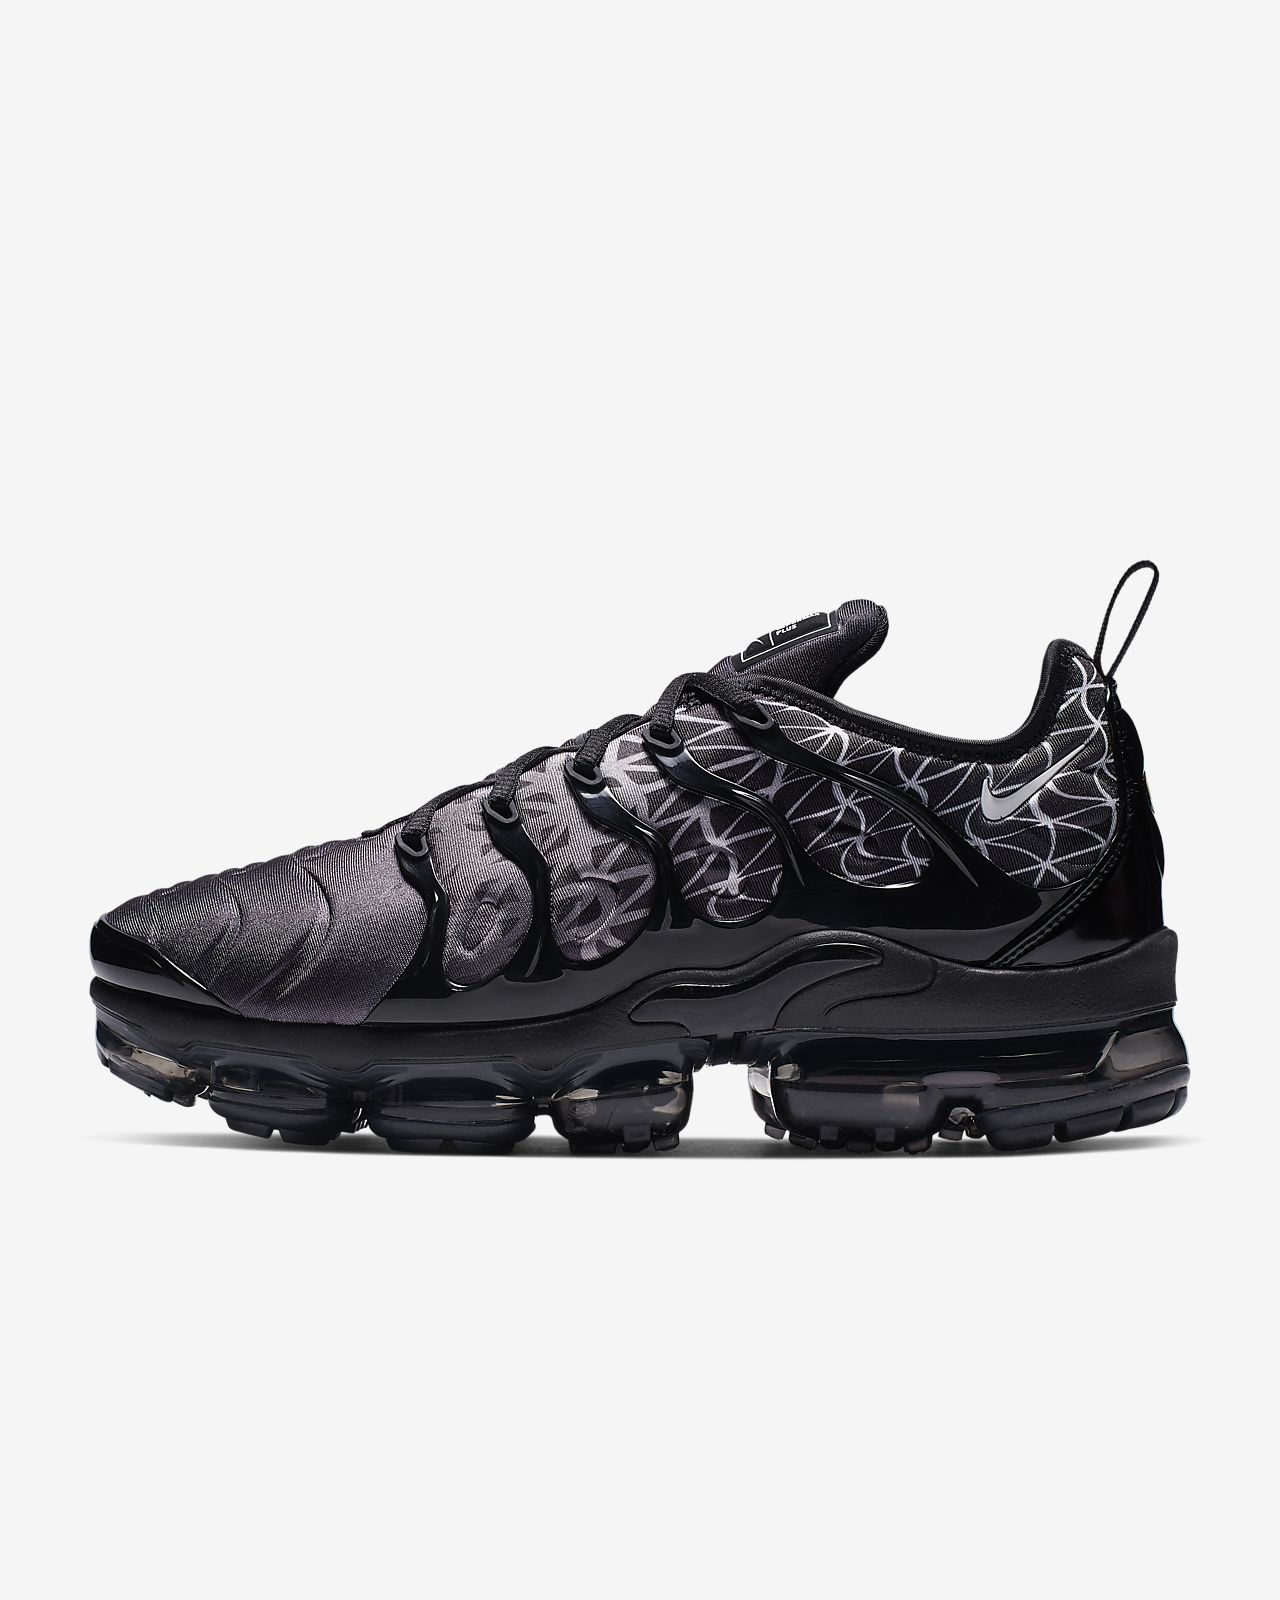 sneakers for cheap e7f5e f71c1 ... Chaussure Nike Air VaporMax Plus pour Homme